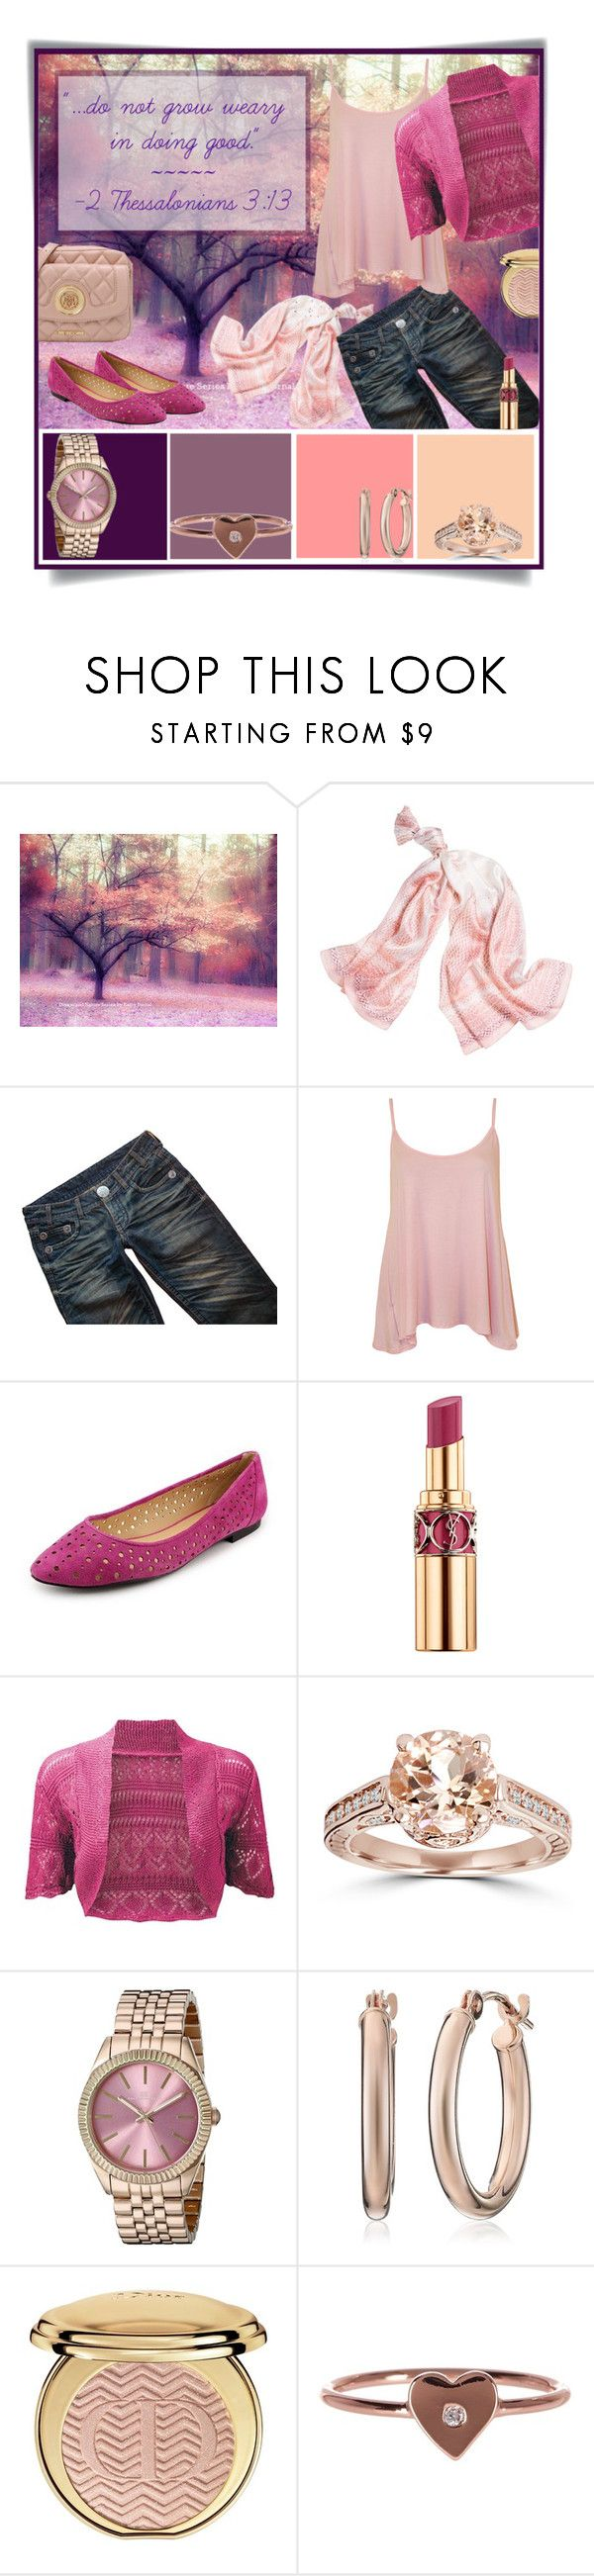 """2 Thessalonians 3:13"" by todahjesus ❤ liked on Polyvore featuring Post-It, White House Black Market, Thomas Wylde, WearAll, Mojo Moxy, Yves Saint Laurent, Oceanaut, Christian Dior, Gorjana and Love Moschino"